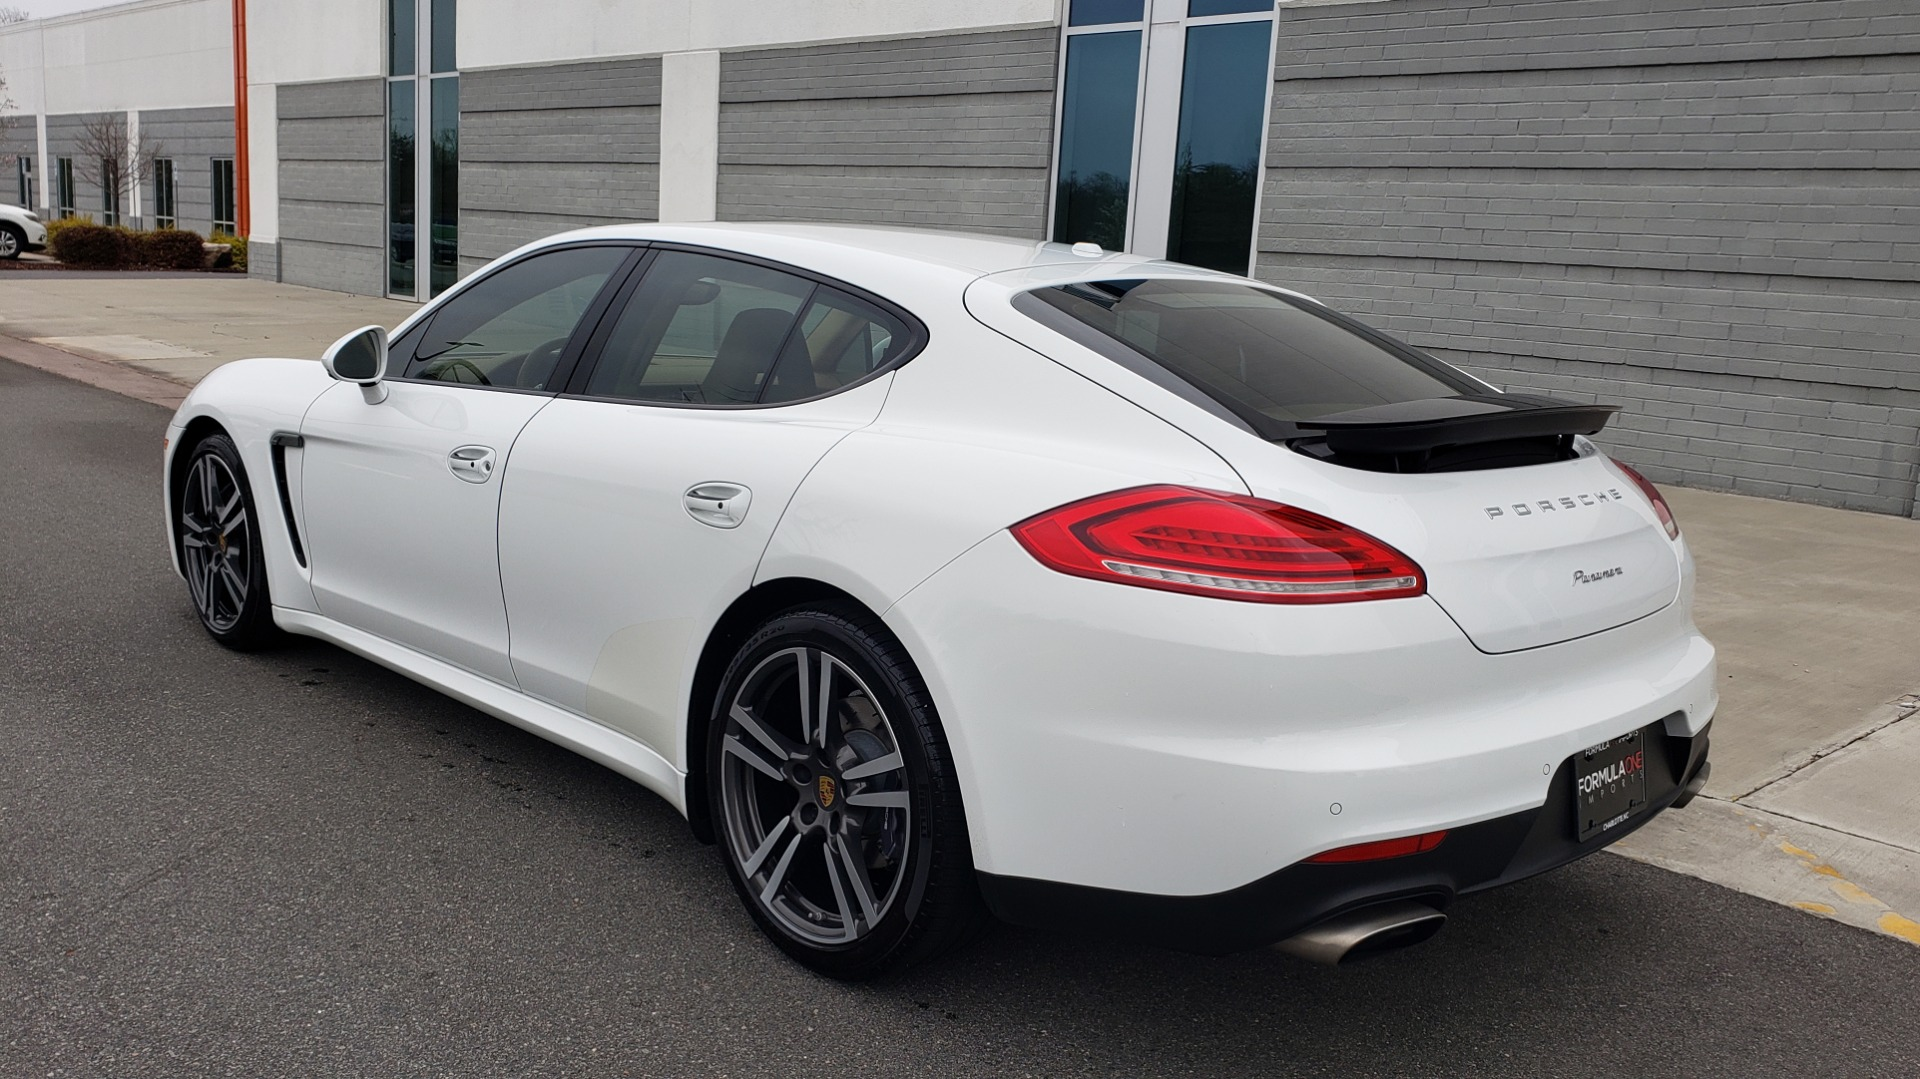 Used 2016 Porsche PANAMERA EDITION / 3.6L V6 / PDK TANS / PREMIUM PKG / LDW / PARK ASSIST for sale Sold at Formula Imports in Charlotte NC 28227 9